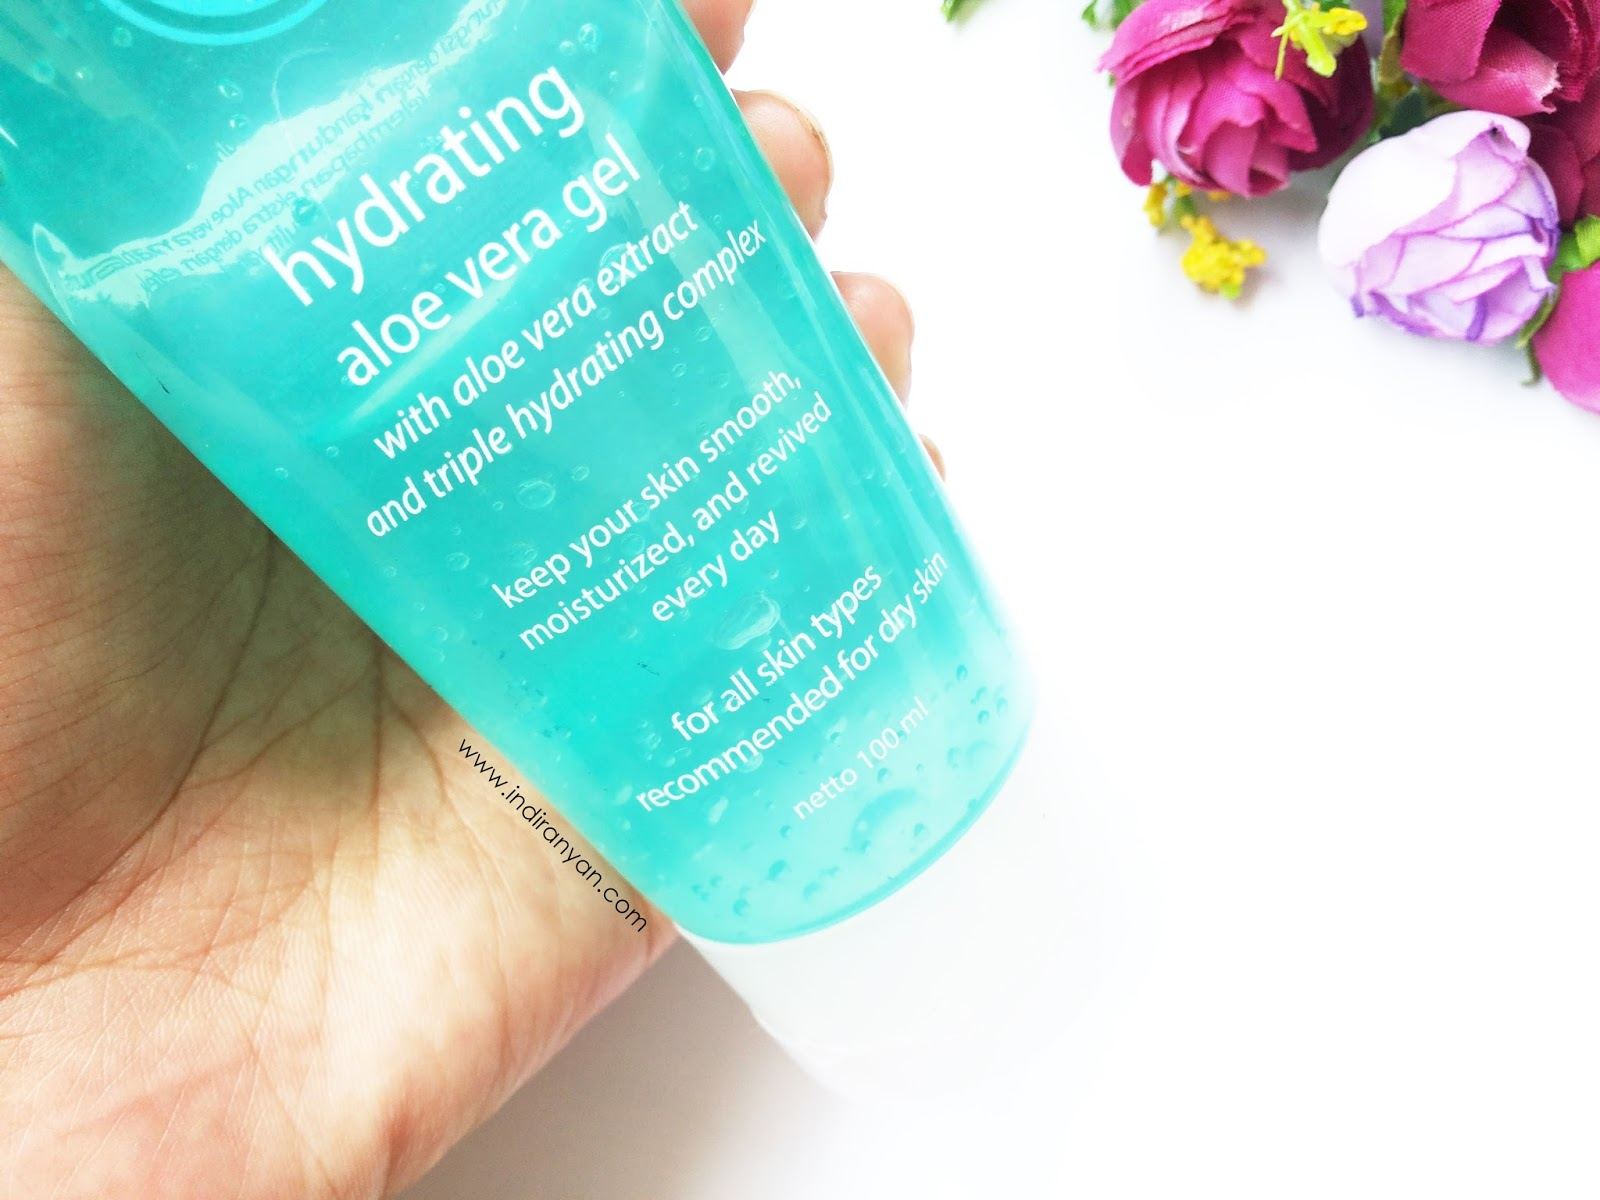 [REVIEW] Wardah Hydrating Aloe Vera Gel